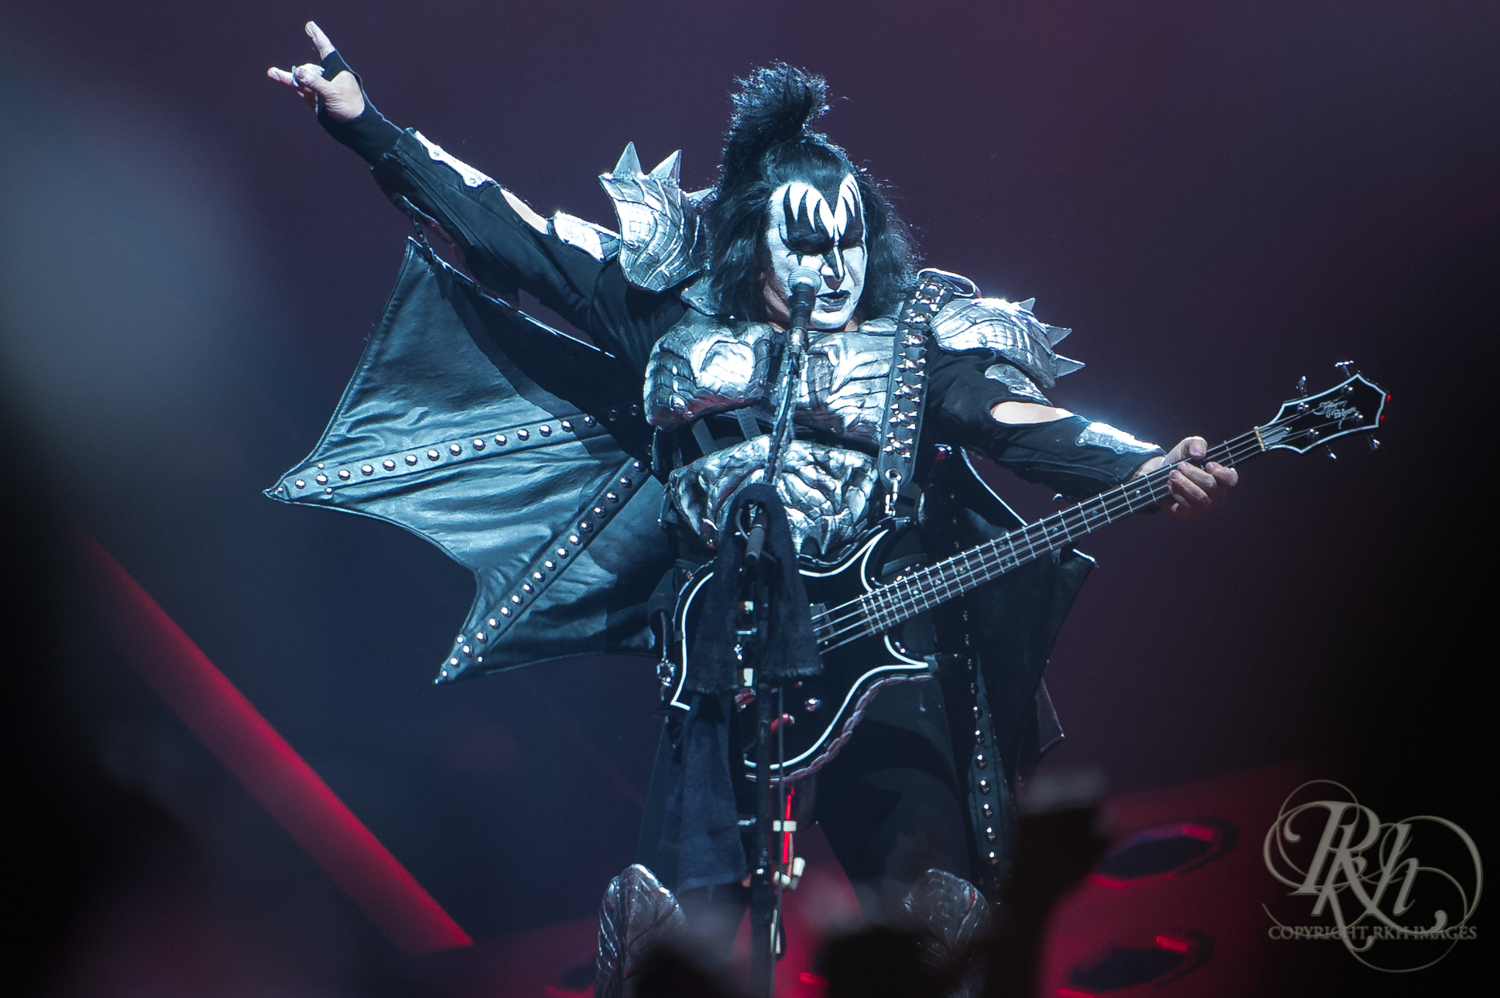 Kiss - End of the Road Tour - Target Center - Minneapolis - Concert Photography - RKH Images  (5 of 12).jpg